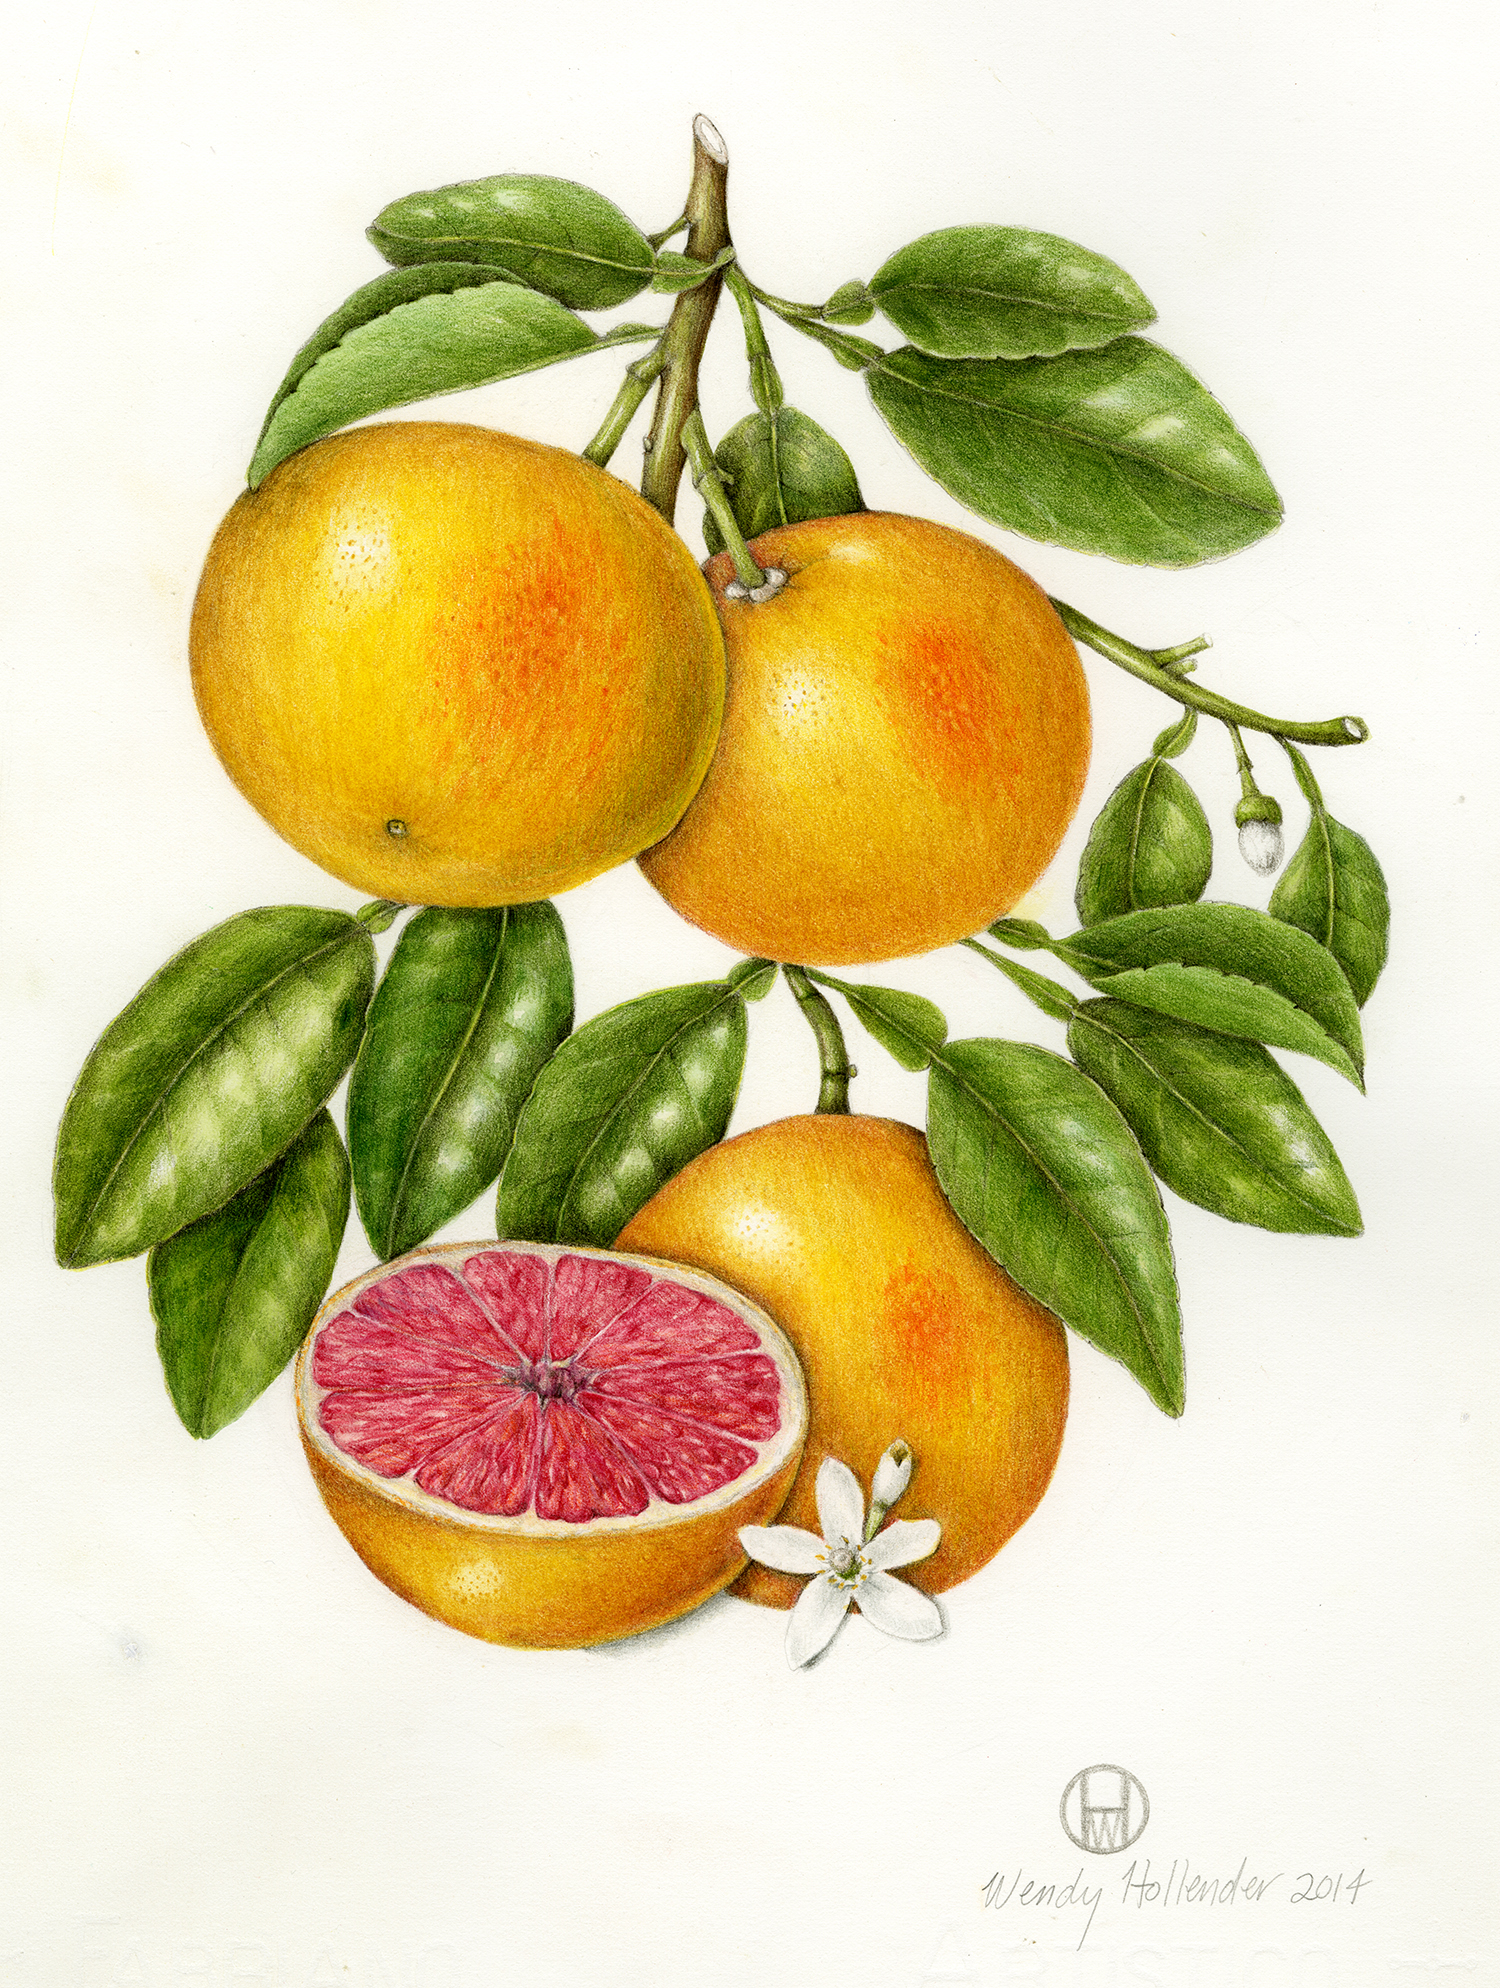 Bramble & Vine: Original Illustration of Grapefruit